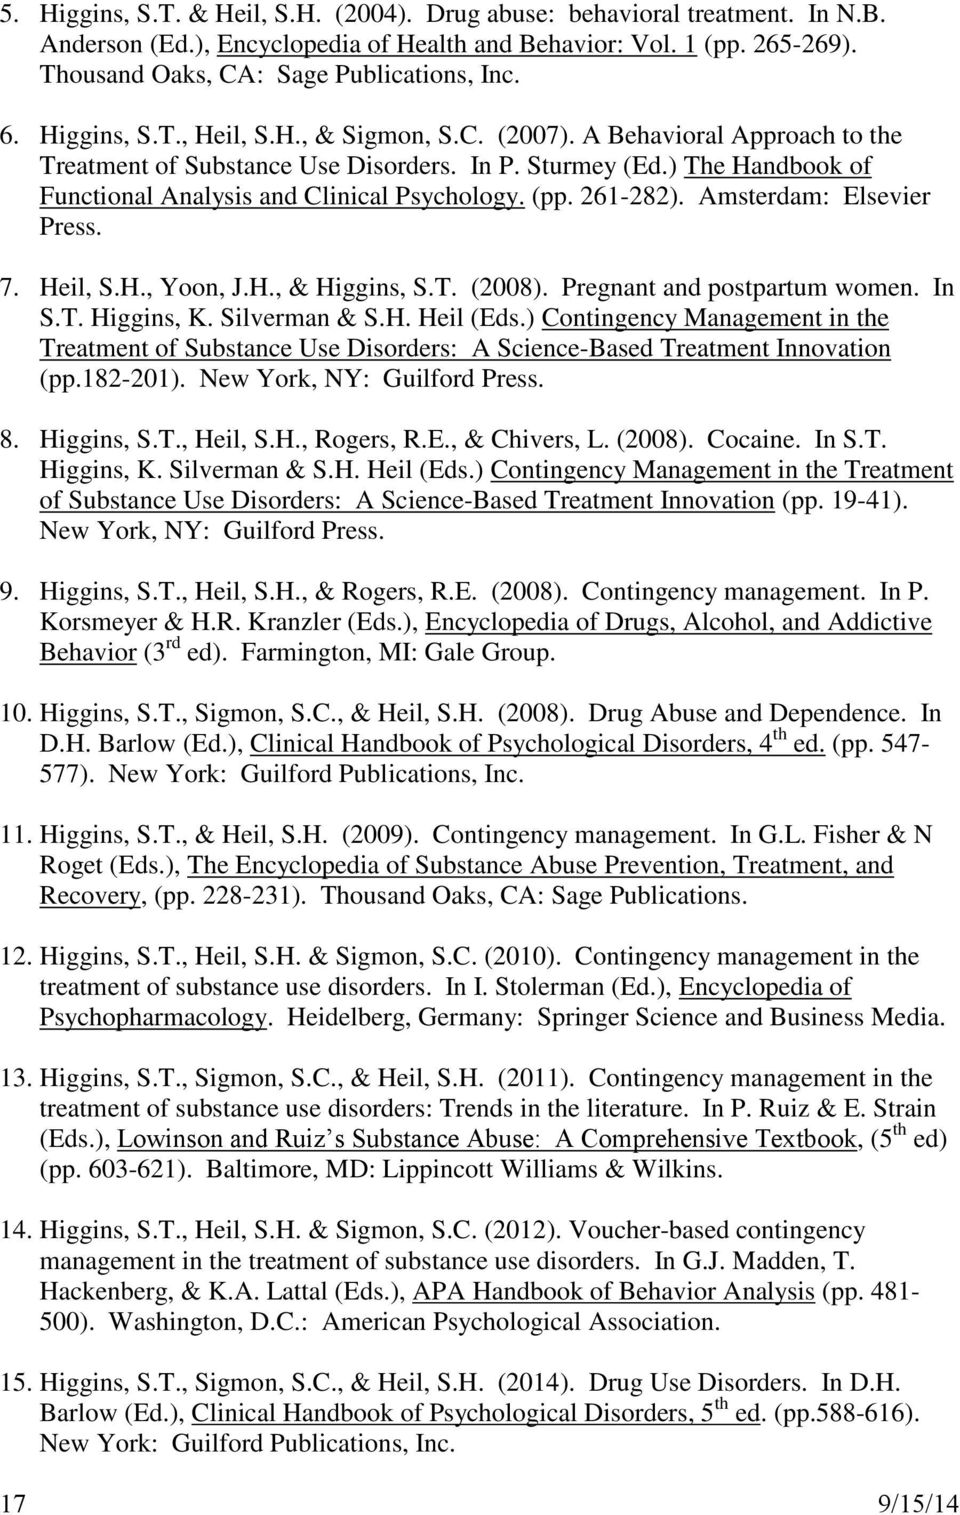 (pp. 261-282). Amsterdam: Elsevier Press. 7. Heil, S.H., Yoon, J.H., & Higgins, S.T. (2008). Pregnant and postpartum women. In S.T. Higgins, K. Silverman & S.H. Heil (Eds.